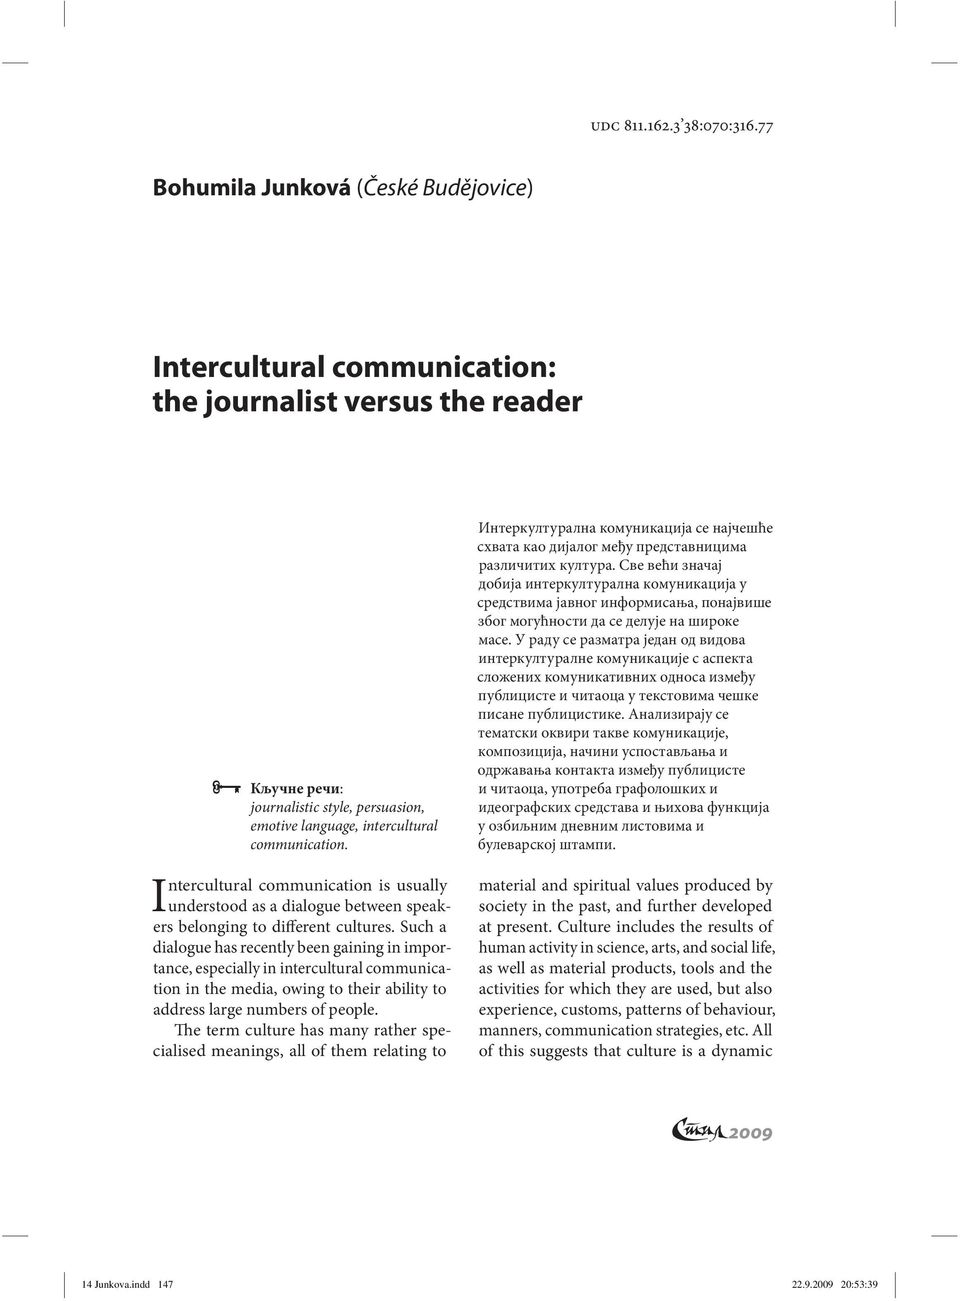 Intercultural communication is usually understood as a dialogue between speakers belonging to different cultures.